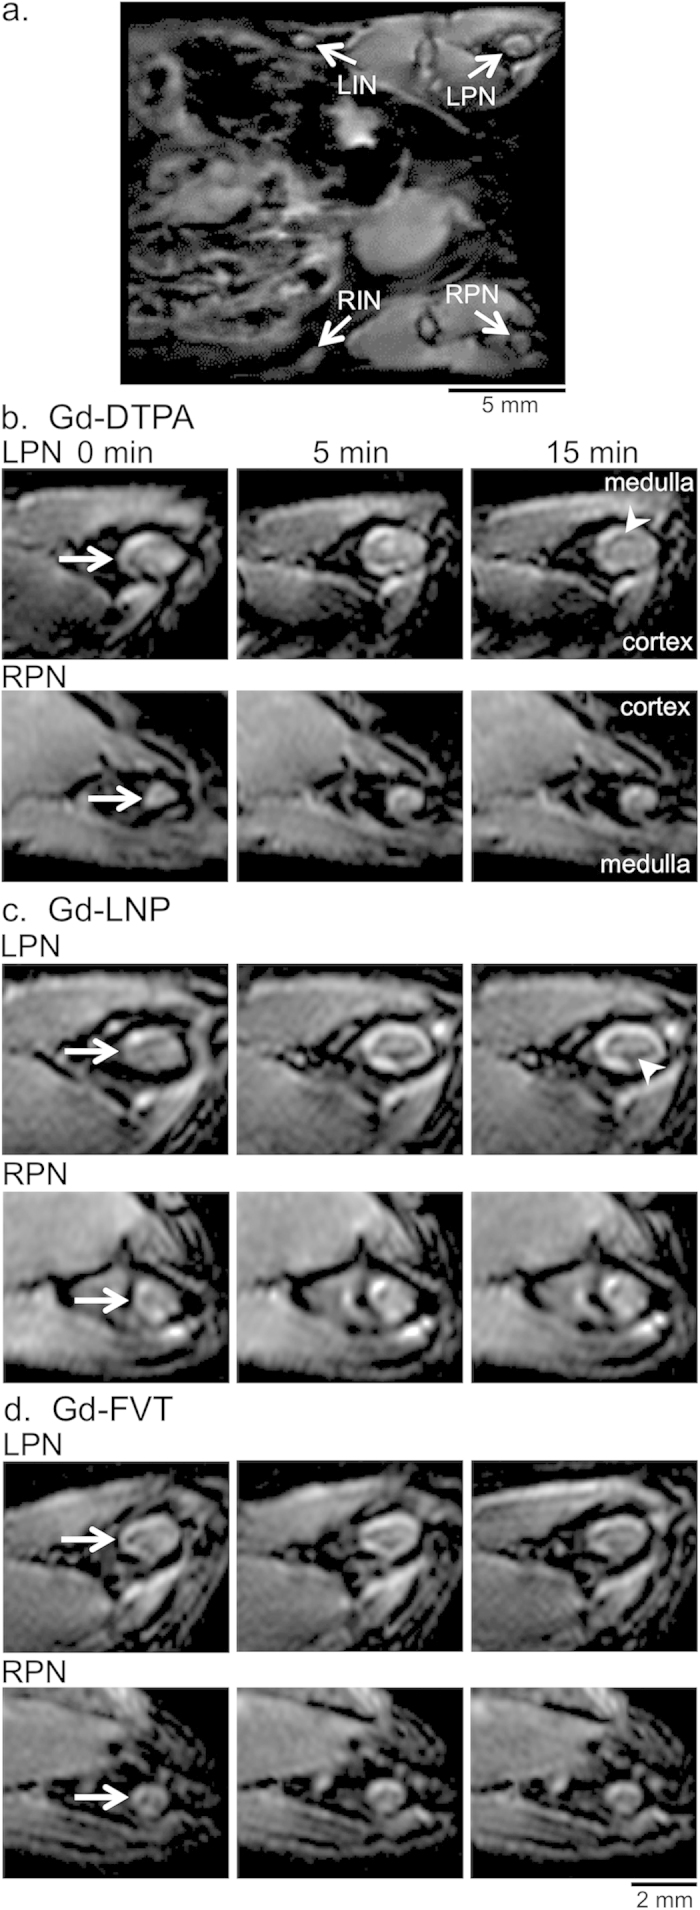 Gd-LNP contrast media detects increased lymph drainage through the tumor-draining popliteal lymph node. ( a ) Full field-of-view oblique MIP image, illustrating the in vivo locations of the left and right popliteal (LPN and RPN, respectively) and inguinal LNs (LIN and RIN) that were analyzed in the study. The MIP was generated from 5 min post- GD-LNP images, in the same animal shown in part c. ( b ) Representative single slice images of LPN and RPN (arrows) from pre-contrast (0 min) and from 5 and 15 minute post-contrast scans after Gd-DTPA injection demonstrate modest LN enhancement after contrast injection. The orientation of the cortex and medulla is indicated. Arrowhead indicates the dark artifacts arising after contrast agent injection. ( c ) Single slice images of popliteal LNs after Gd-LNP injection show higher uptake into the LPN at 5 and 15 min. ( d ) Single slice images of popliteal LNs after Gd-FVT injection show uptake into the LPN and RPN at 5 min after contrast agent injection. Scale bars are indicated.